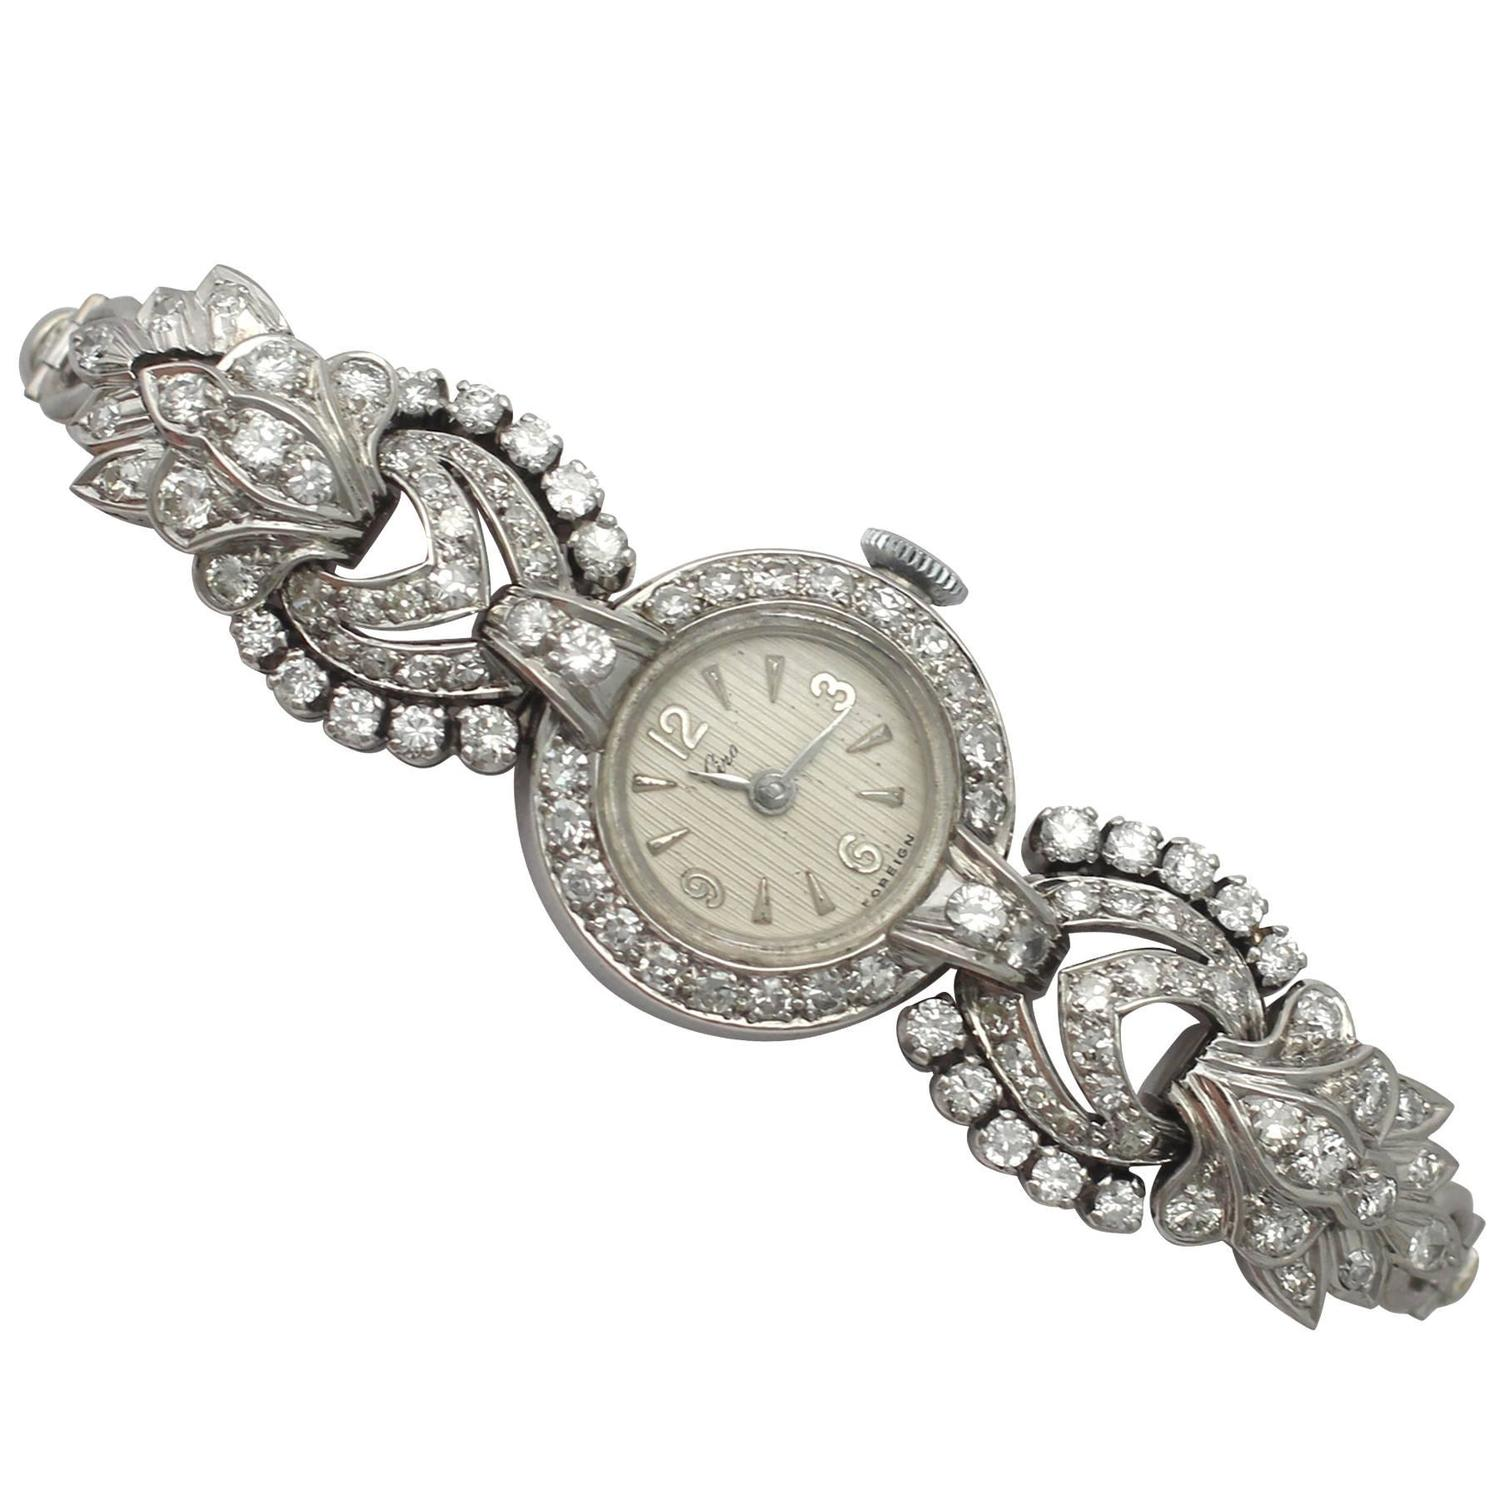 Yafa signed jewels new york ny 1stdibs page 4 - 1950s And 1960s 2 92 Carat Diamond Cocktail Watch In Platinum And 9k White Gold